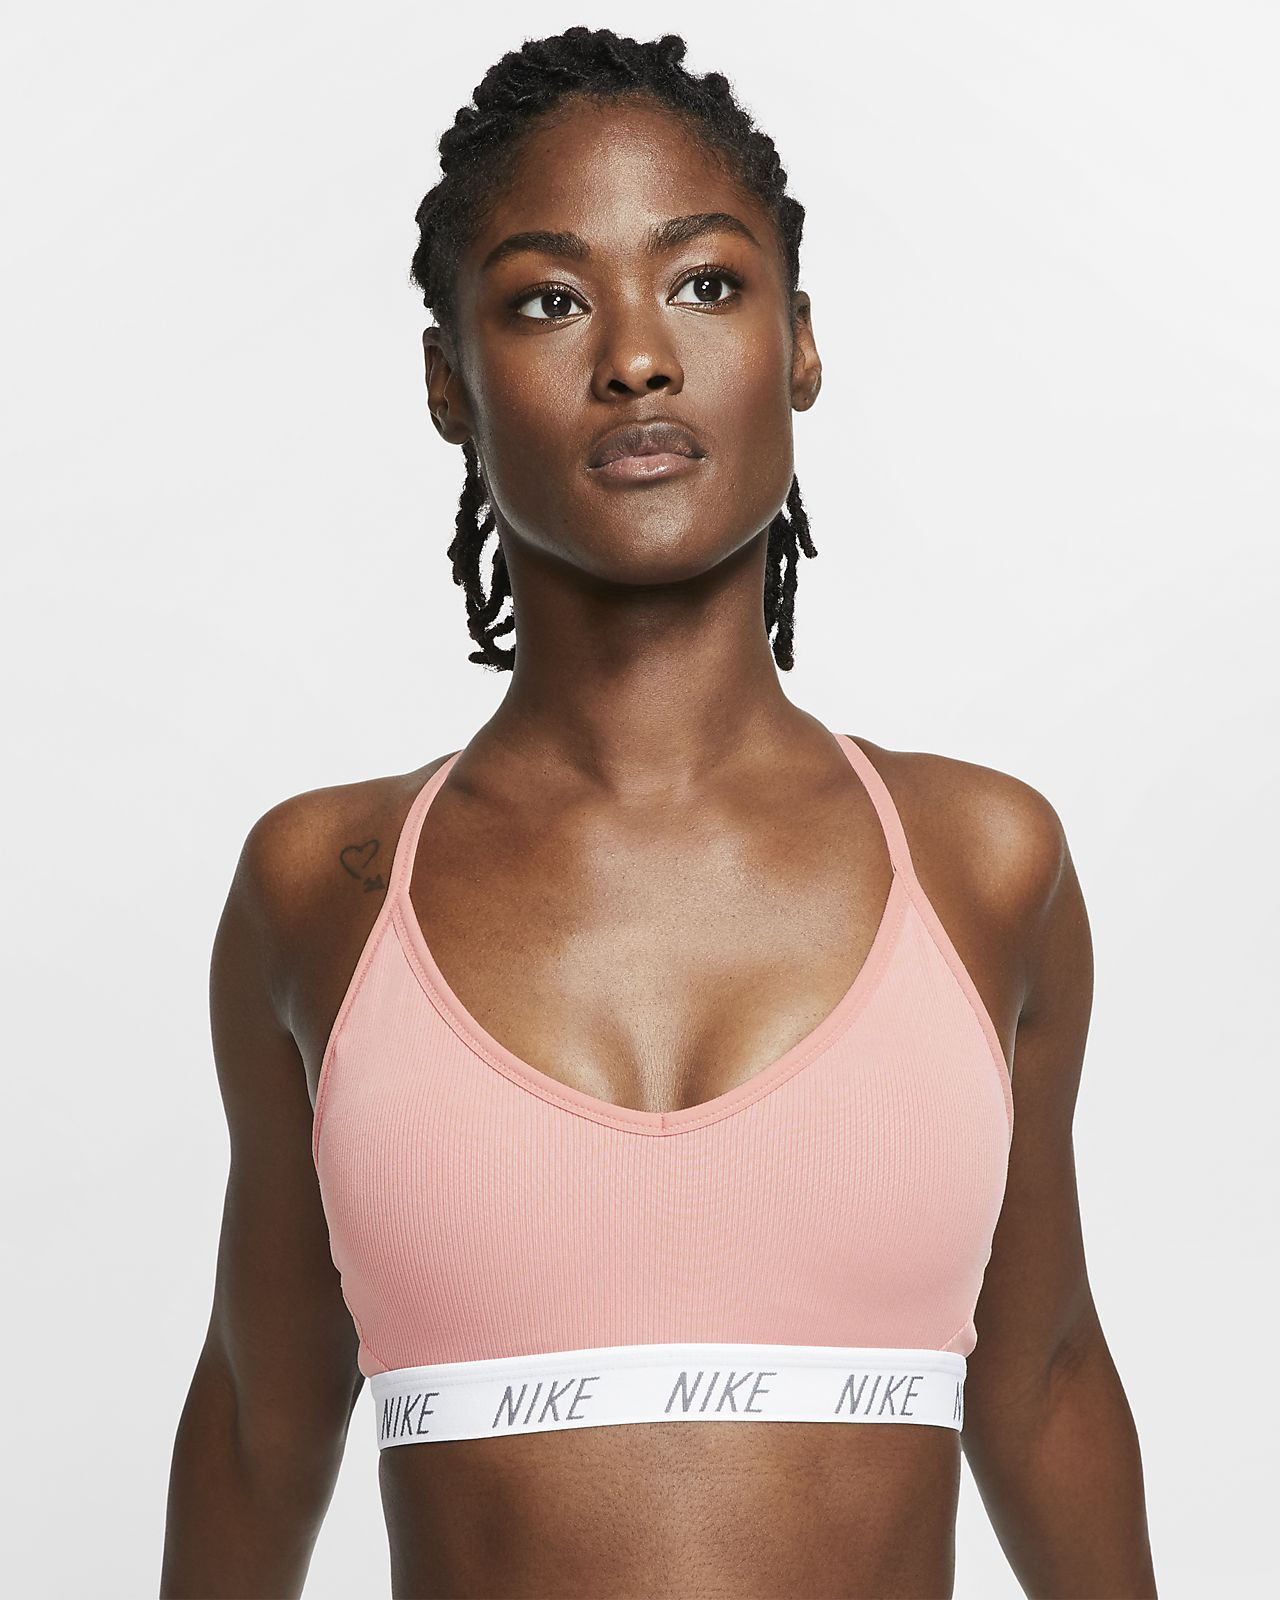 Nike Indy Women S Light Support Yoga Sports Bra Nike Com Yoga Sports Bra Sports Bra Bra